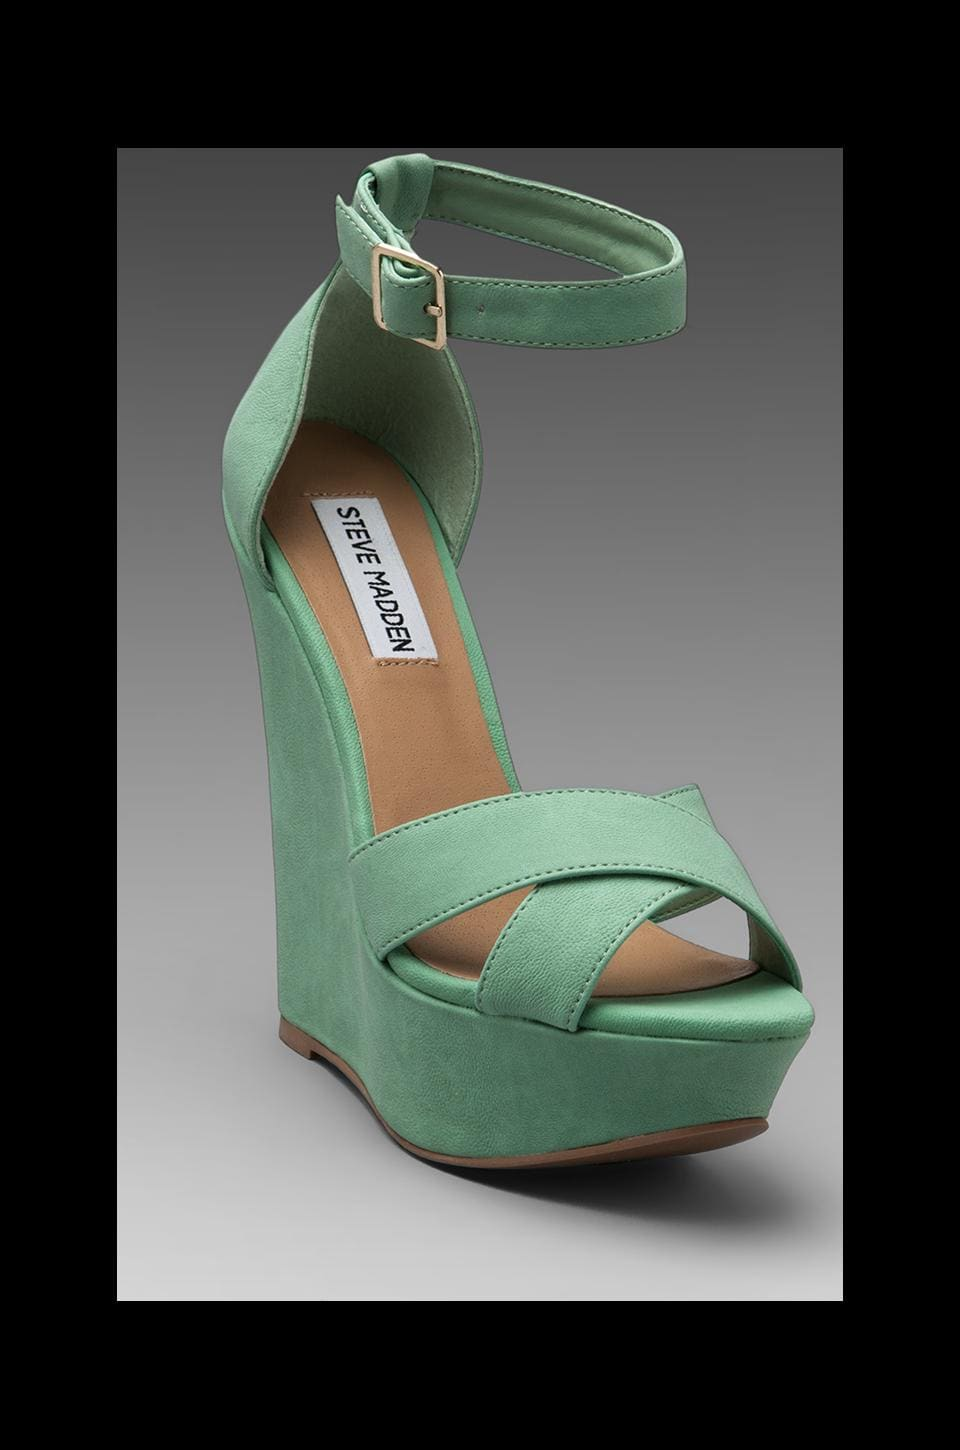 Steve Madden Xenon Wedge in Mint Green